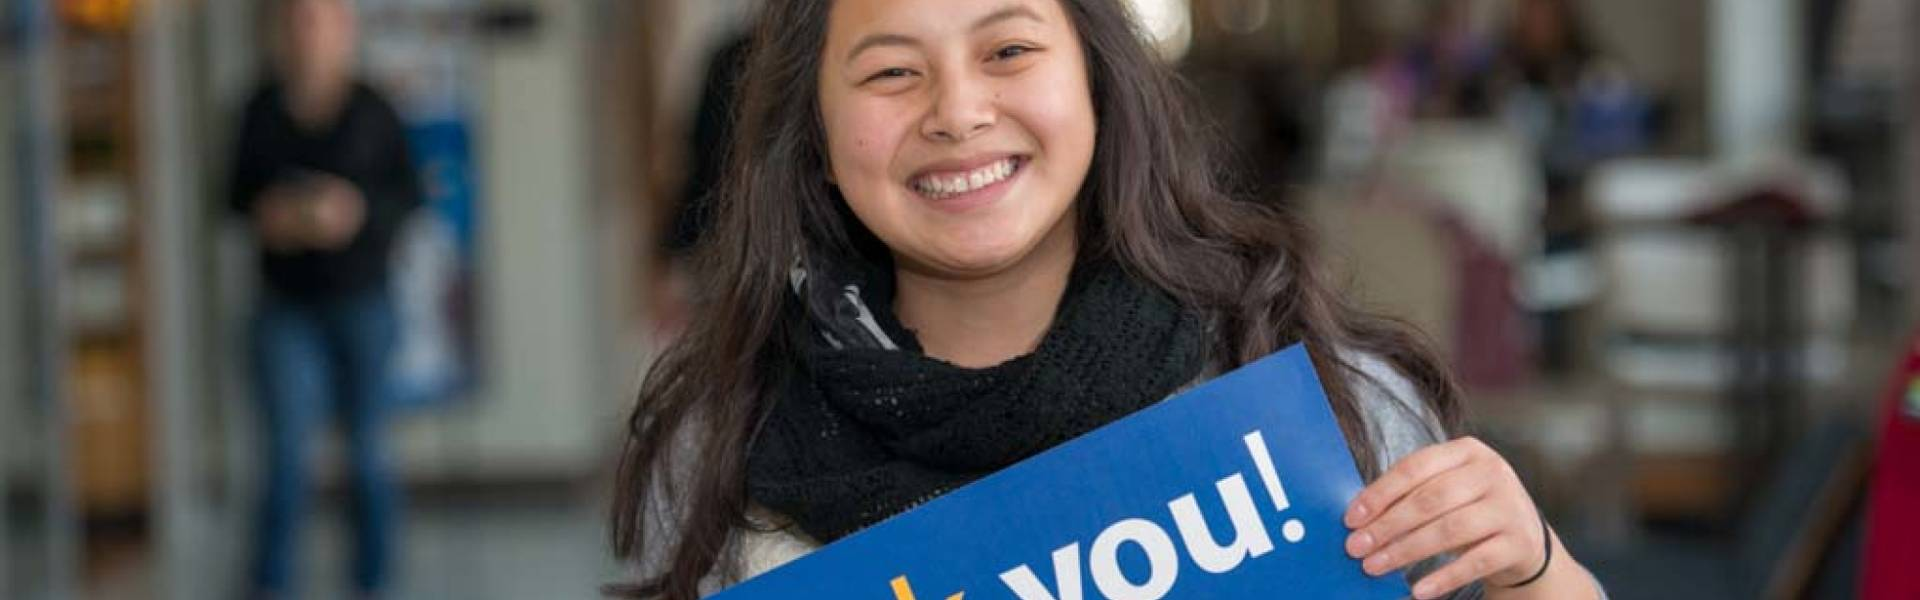 UW-Eau Claire scholarship recipient Manee Yang holds Thank You card